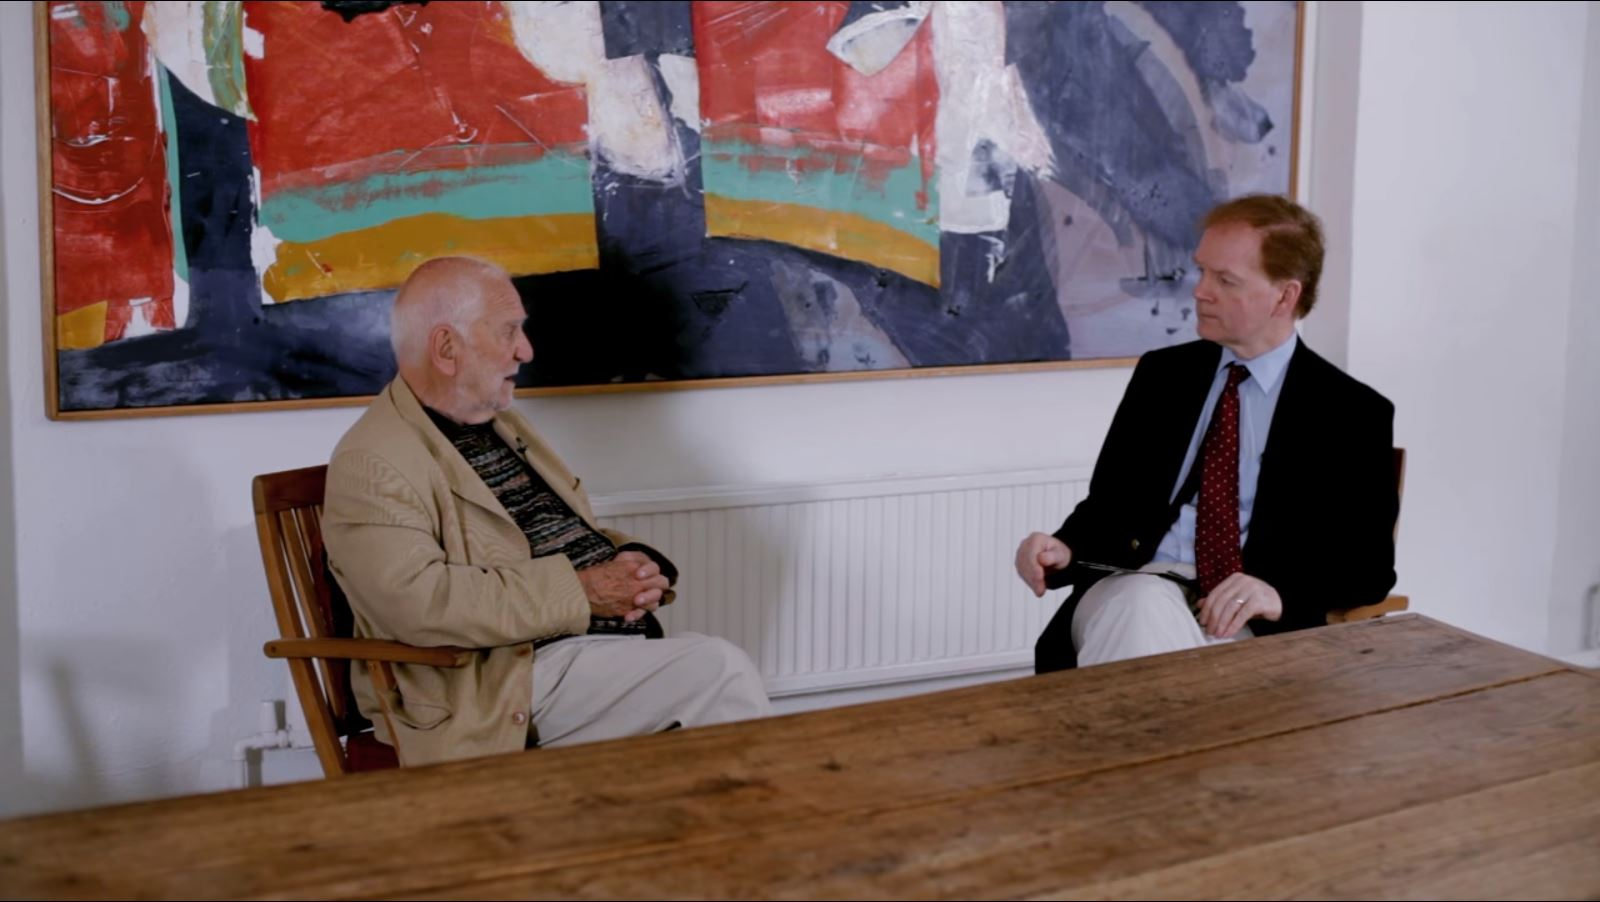 The artist Sir Anthony Caro (1924–2013) converses with Julius Bryant, Keeper of Word and Image, Victoria and Albert Museum, London